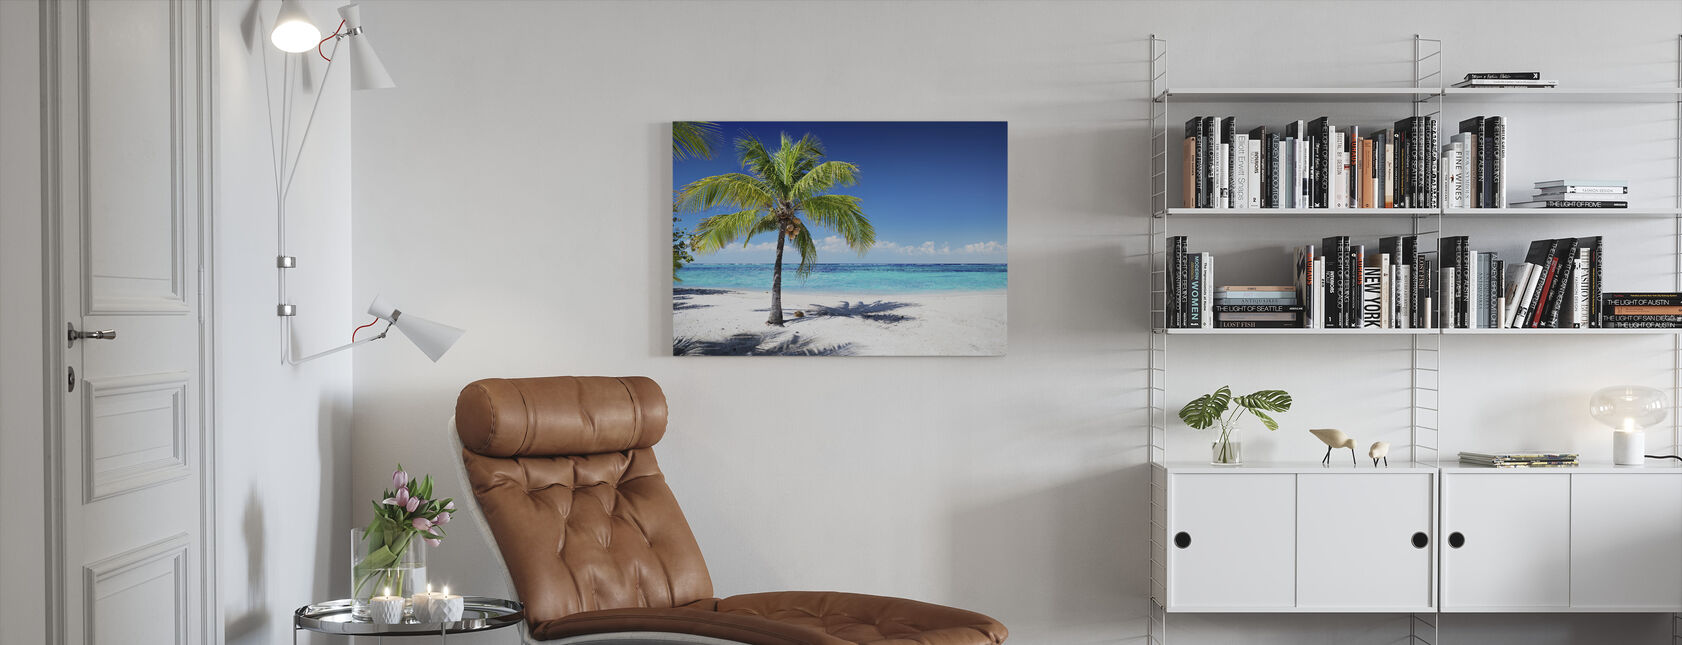 Coral Beach with Palm Tree - Canvas print - Living Room